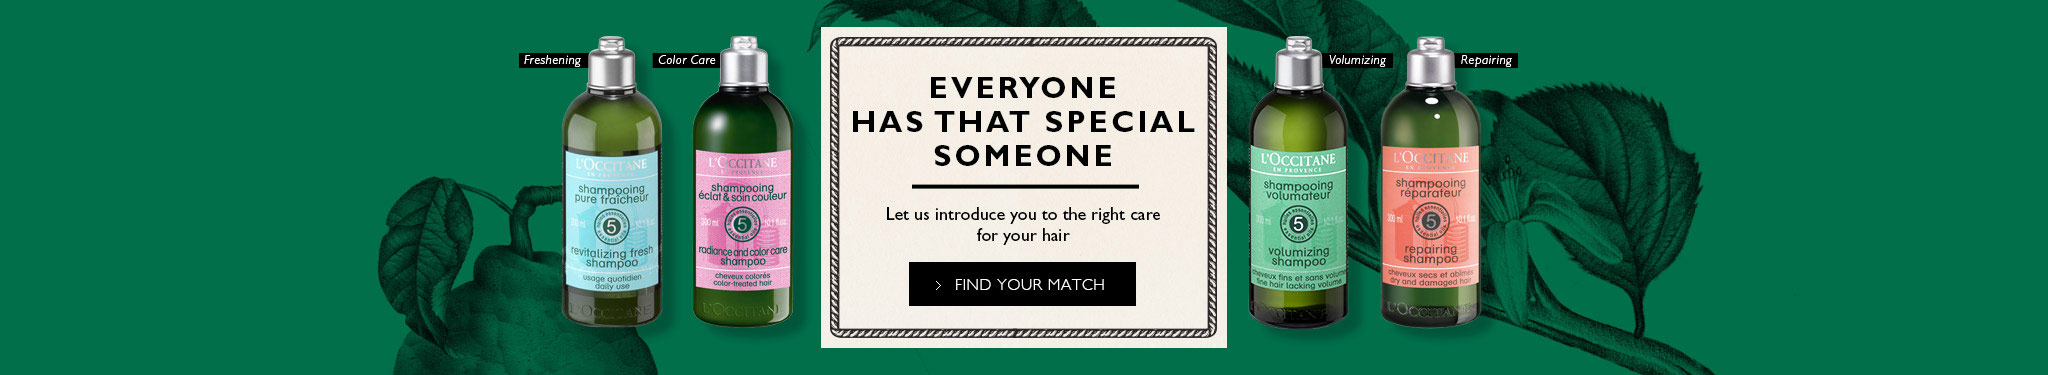 Find Your Match!